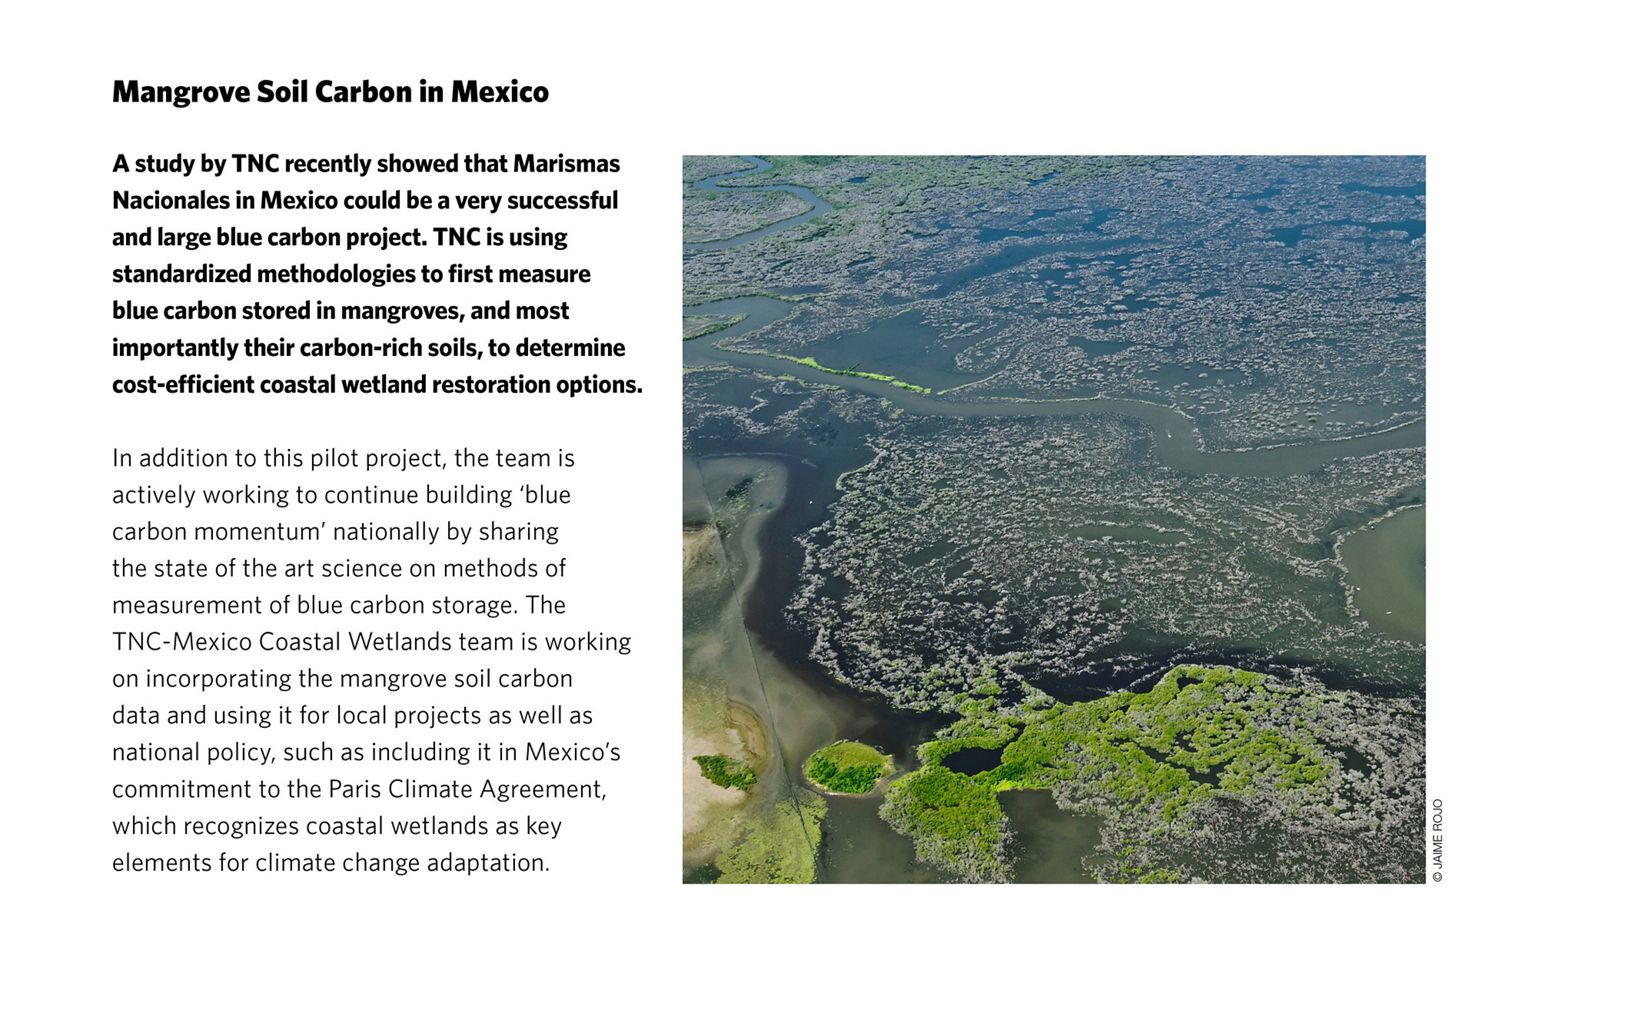 Mangrove Soil Carbon in Mexico